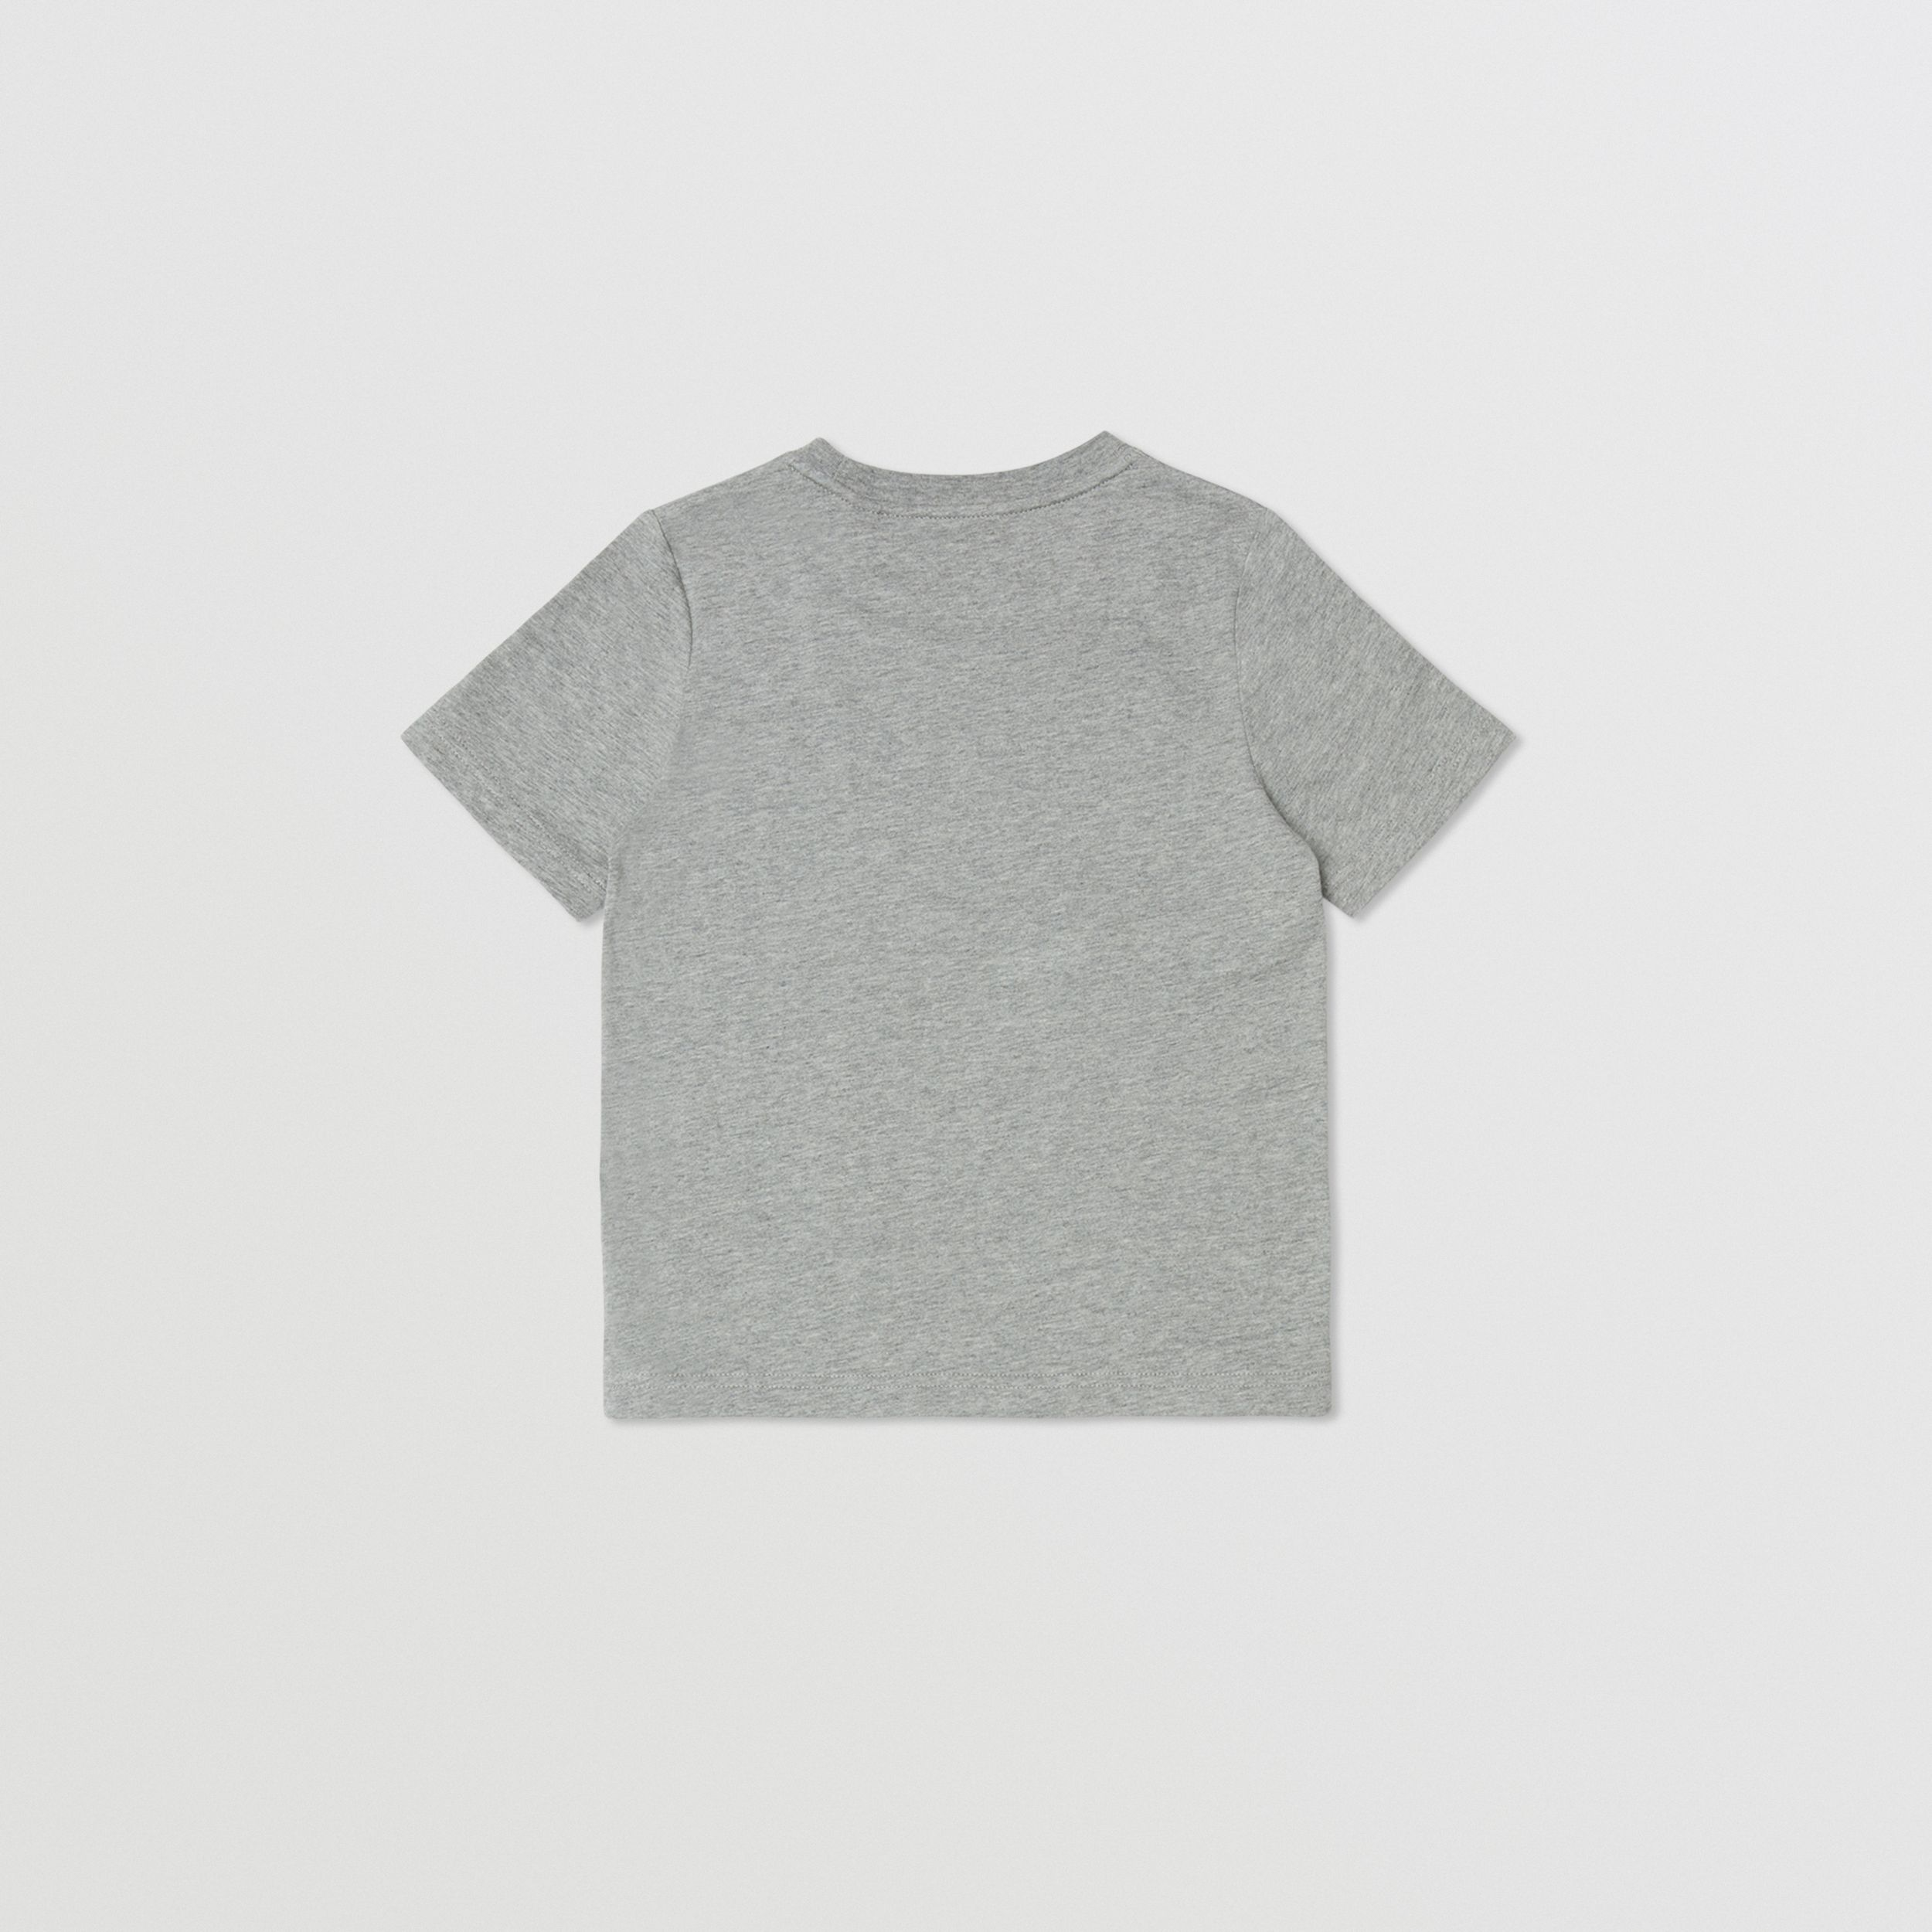 Coordinates Print Cotton T-shirt in Grey Melange | Burberry - 3